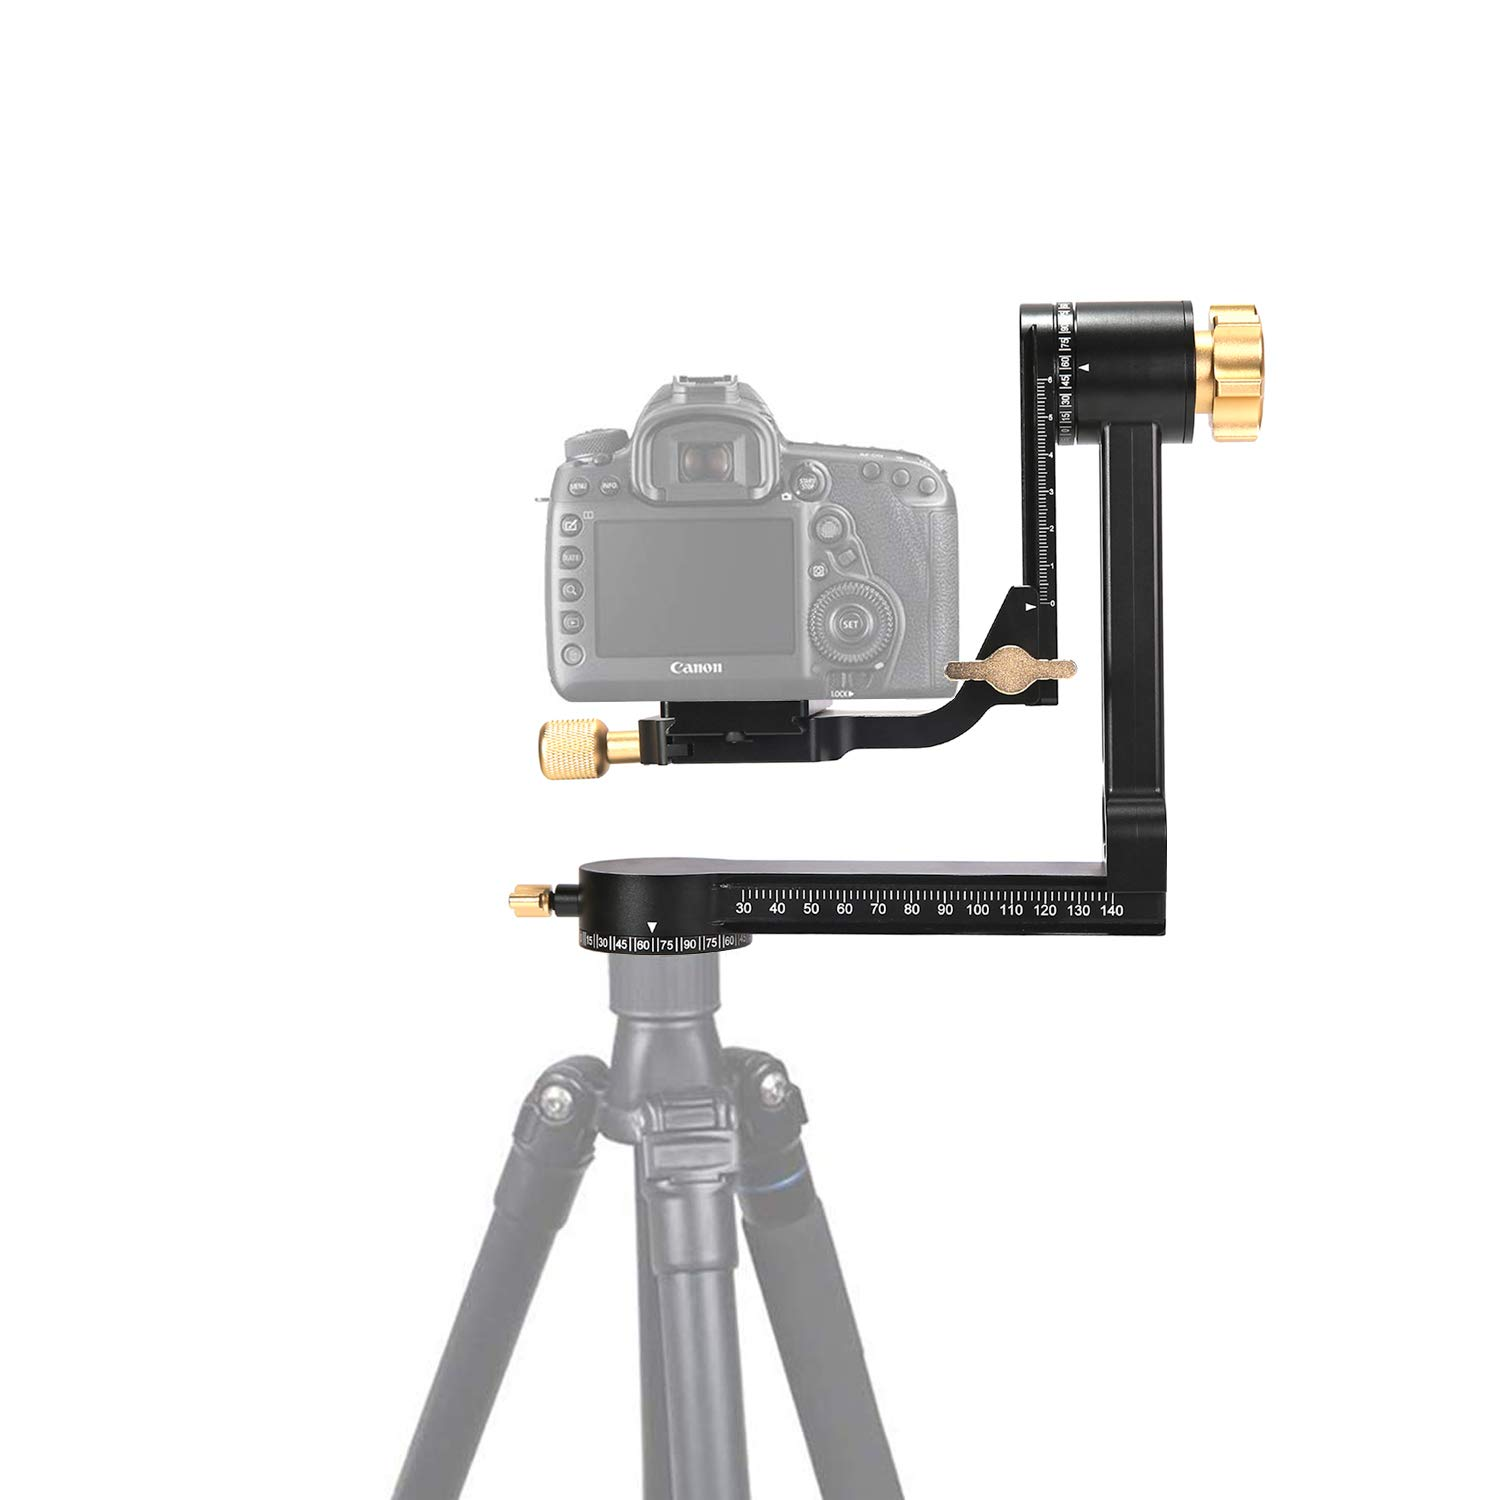 Professional Aluminum Alloy 360 Degree Panoramic Gimbal Tripod Head with Arca-Swiss Standard 1/4'' Quick Release Plate Compatible with Digital SLR Cameras up to 33 lbs /15 kgs by INSEESI